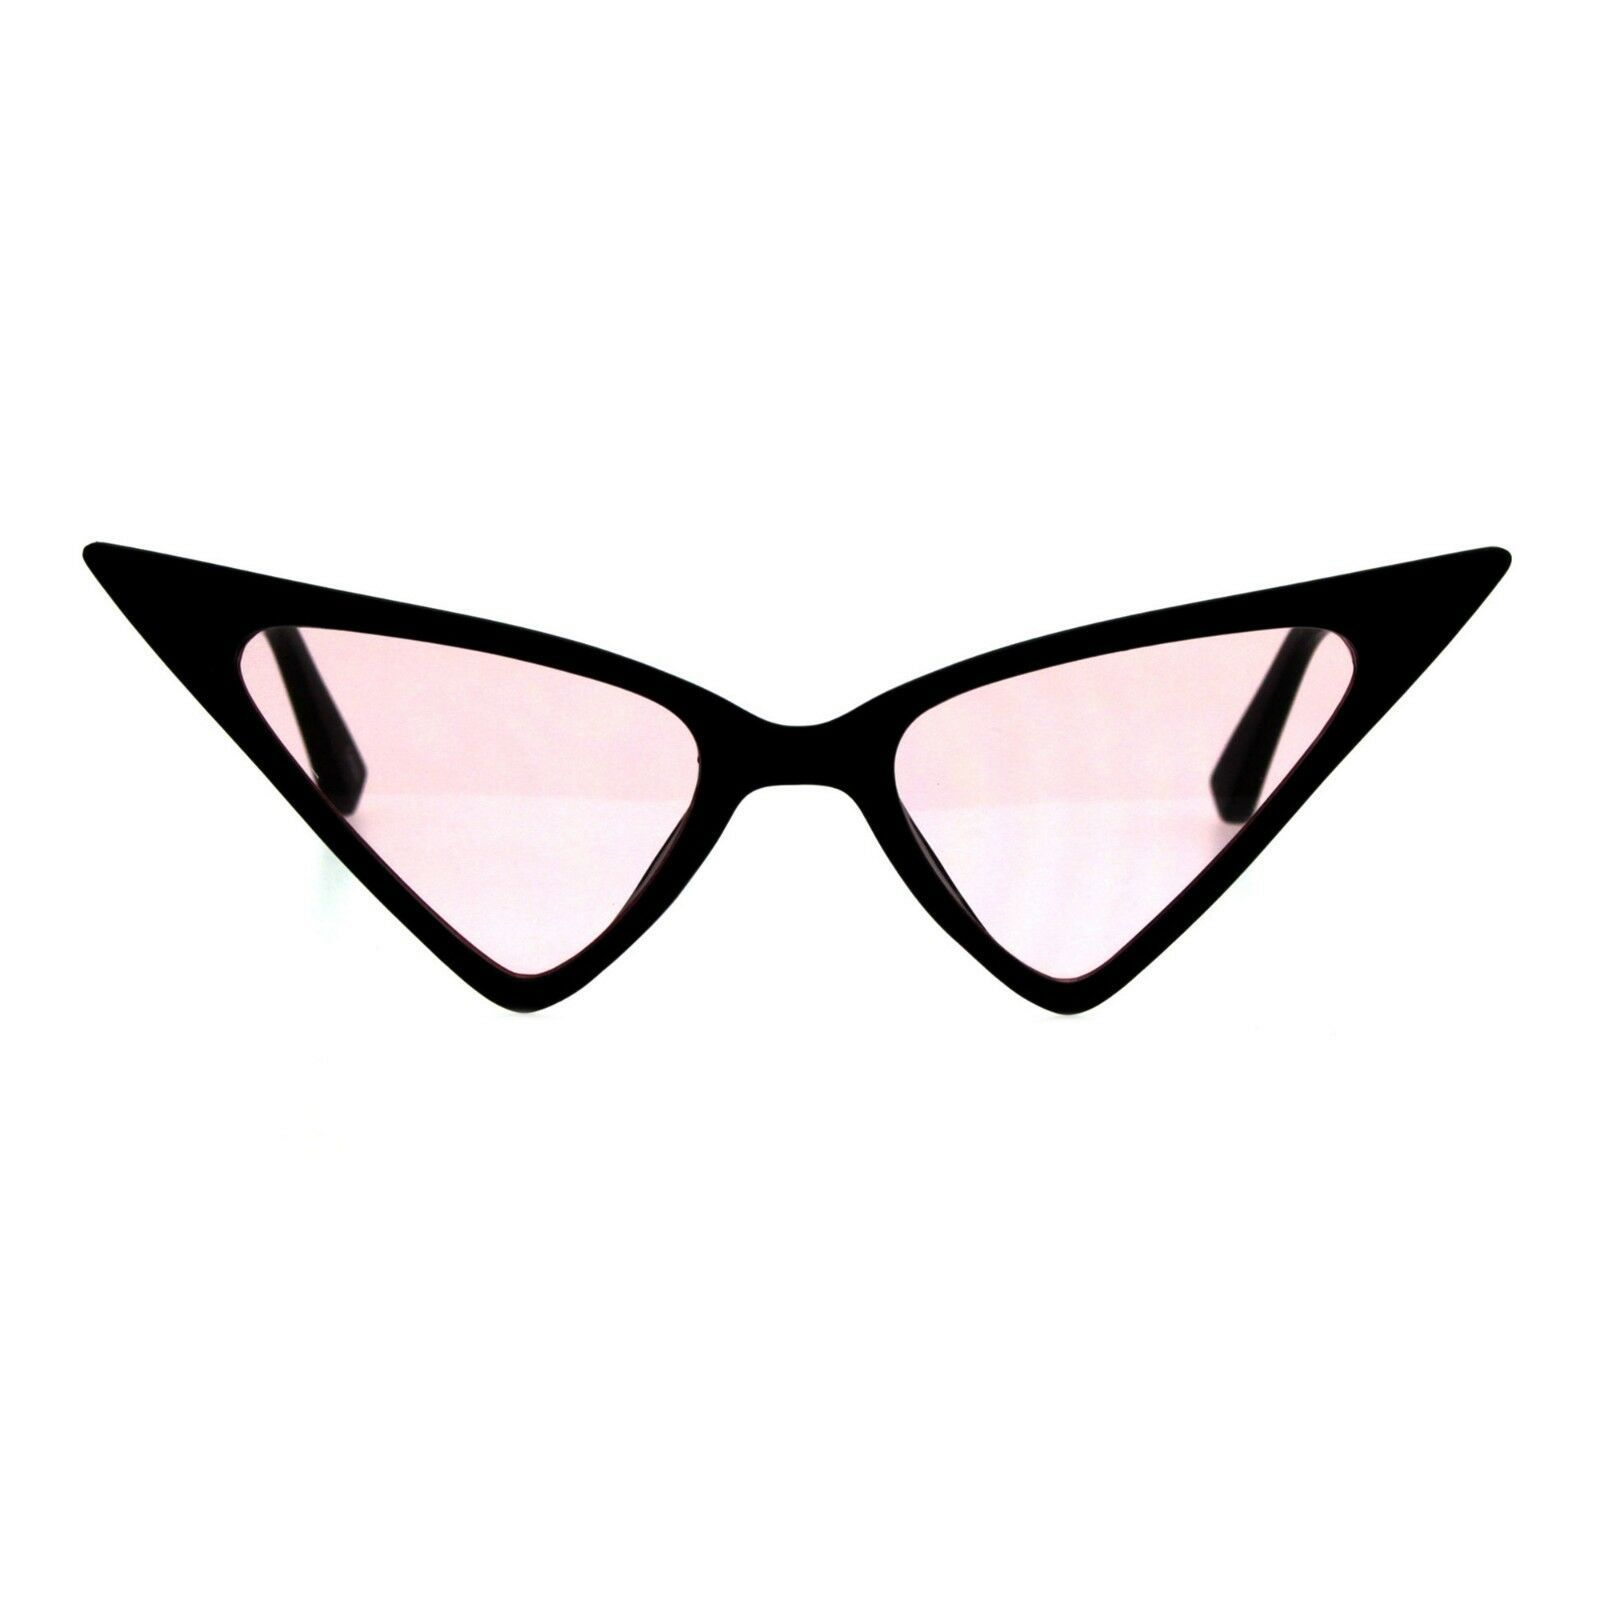 Pointy Triangle Cateye Sunglasses Womens High Fashion Color Lens UV 400